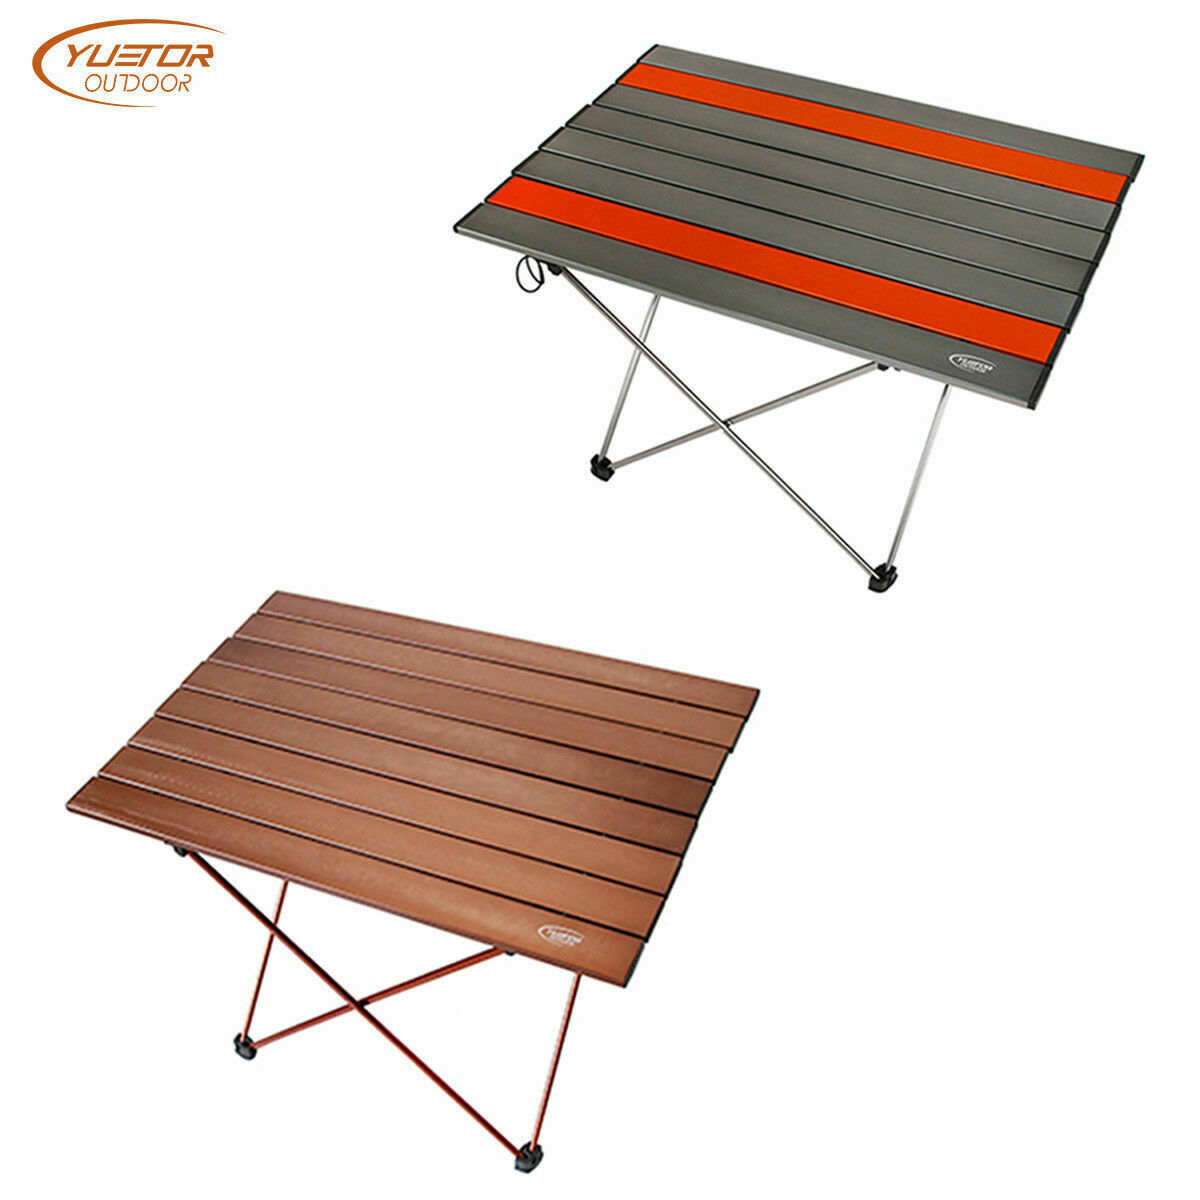 Outdoor Camping Folding Table Portable Camping Table For Camp Picnic Beach Boat inside sizing 1200 X 1200